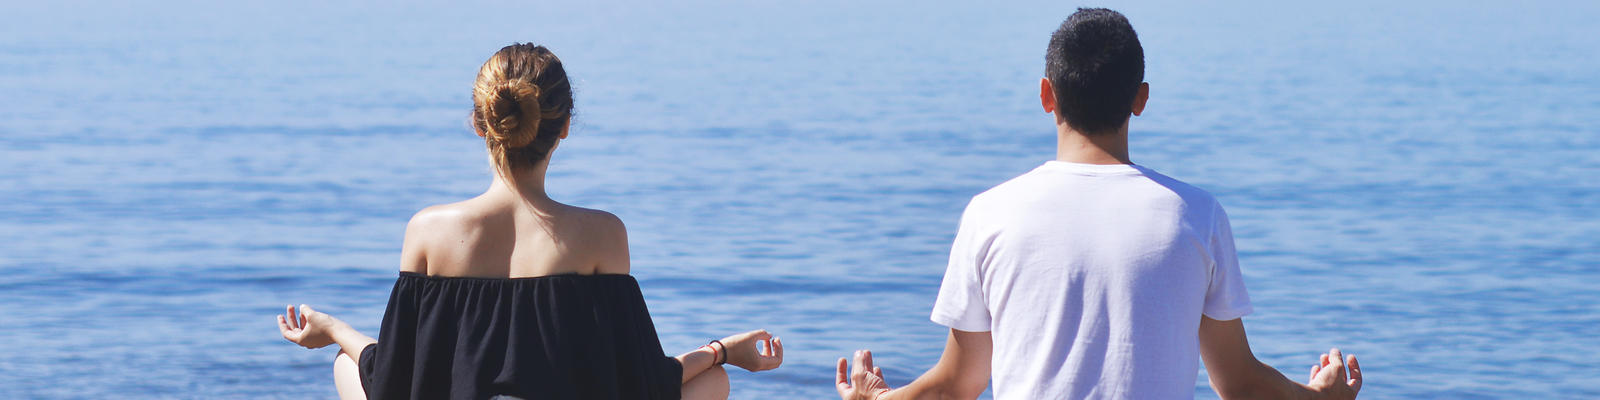 15 Things That Drive You Nuts on a Cruise and How to Be Zen About Them (Photo: More Than Production/Shutterstock.com)